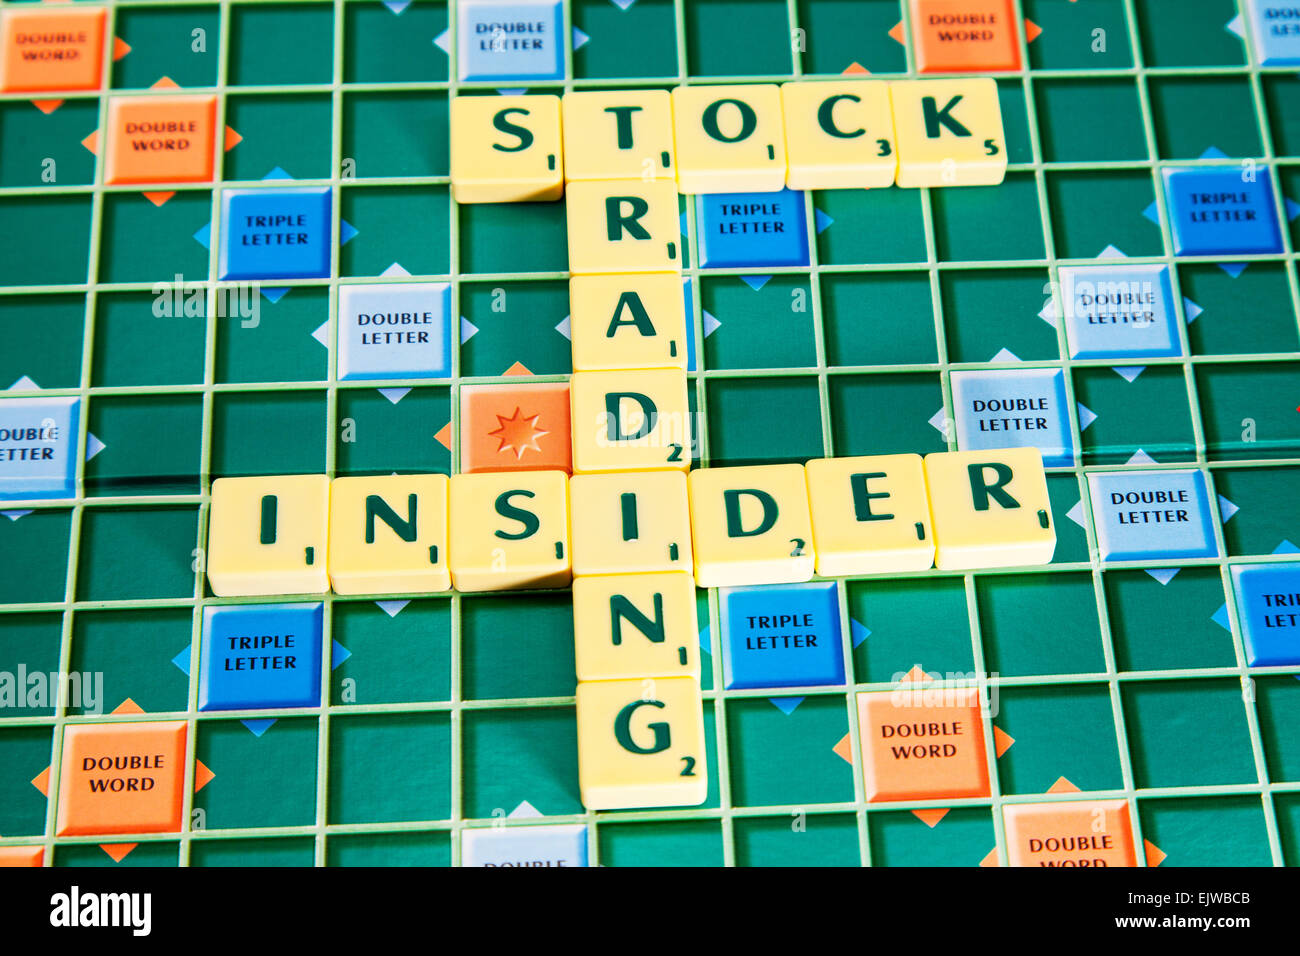 insider trading stocks shares stock exchange deal deals dealers illegal words using scrabble tiles to spell out - Stock Image